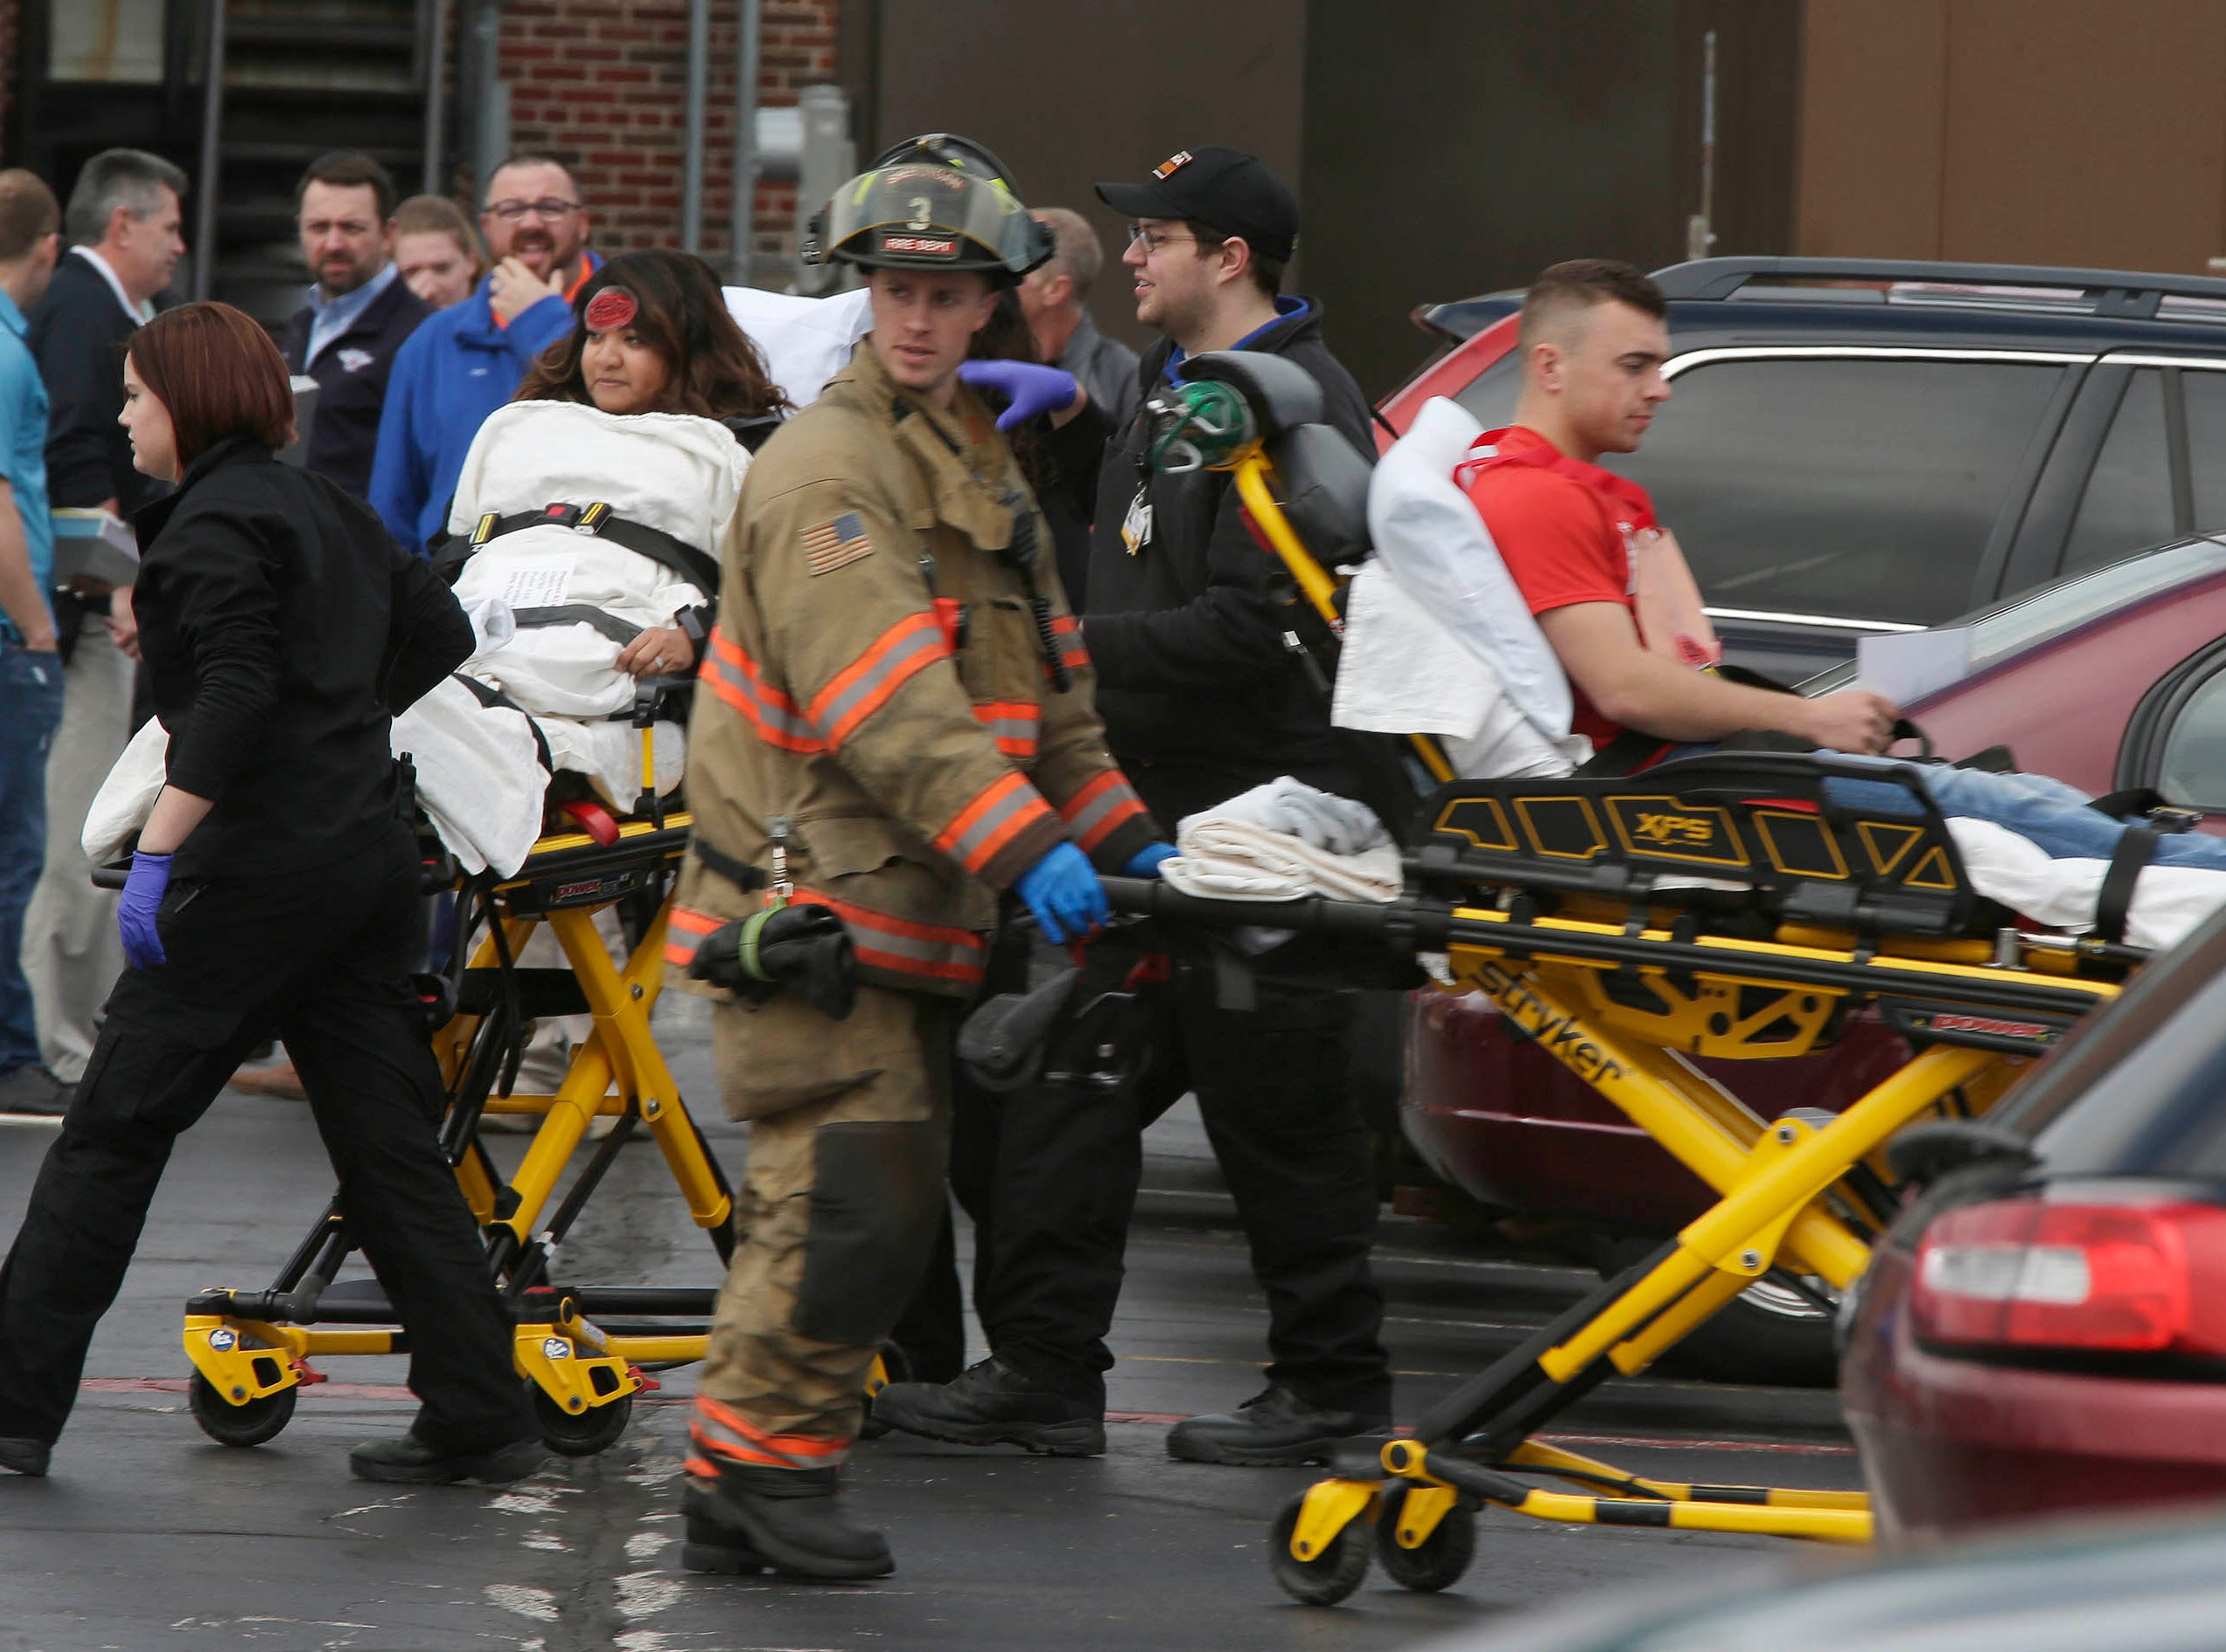 DRILL EXERCISE: Victims are moved to awaiting ambulances at Aurora Sheboygan Memorial Medical Center during a training exercise for Sheboygan area emergency agencies, Tuesday, April 16, 2019, in Sheboygan, Wis.